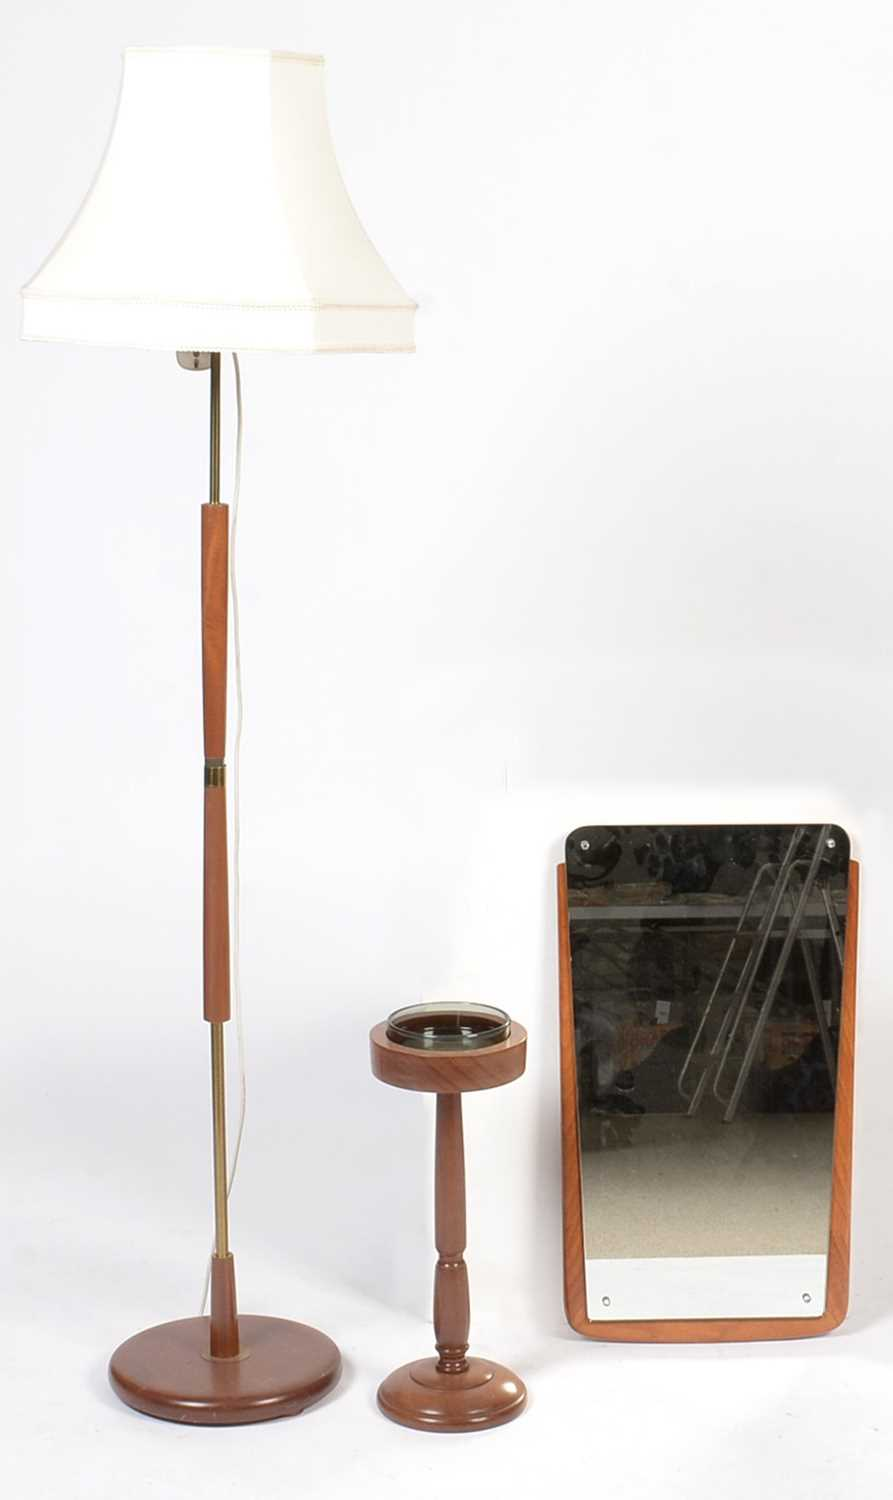 Lot 764 - Mid-century framed mirror, smoker's stand; and brass-bound lamp standard.